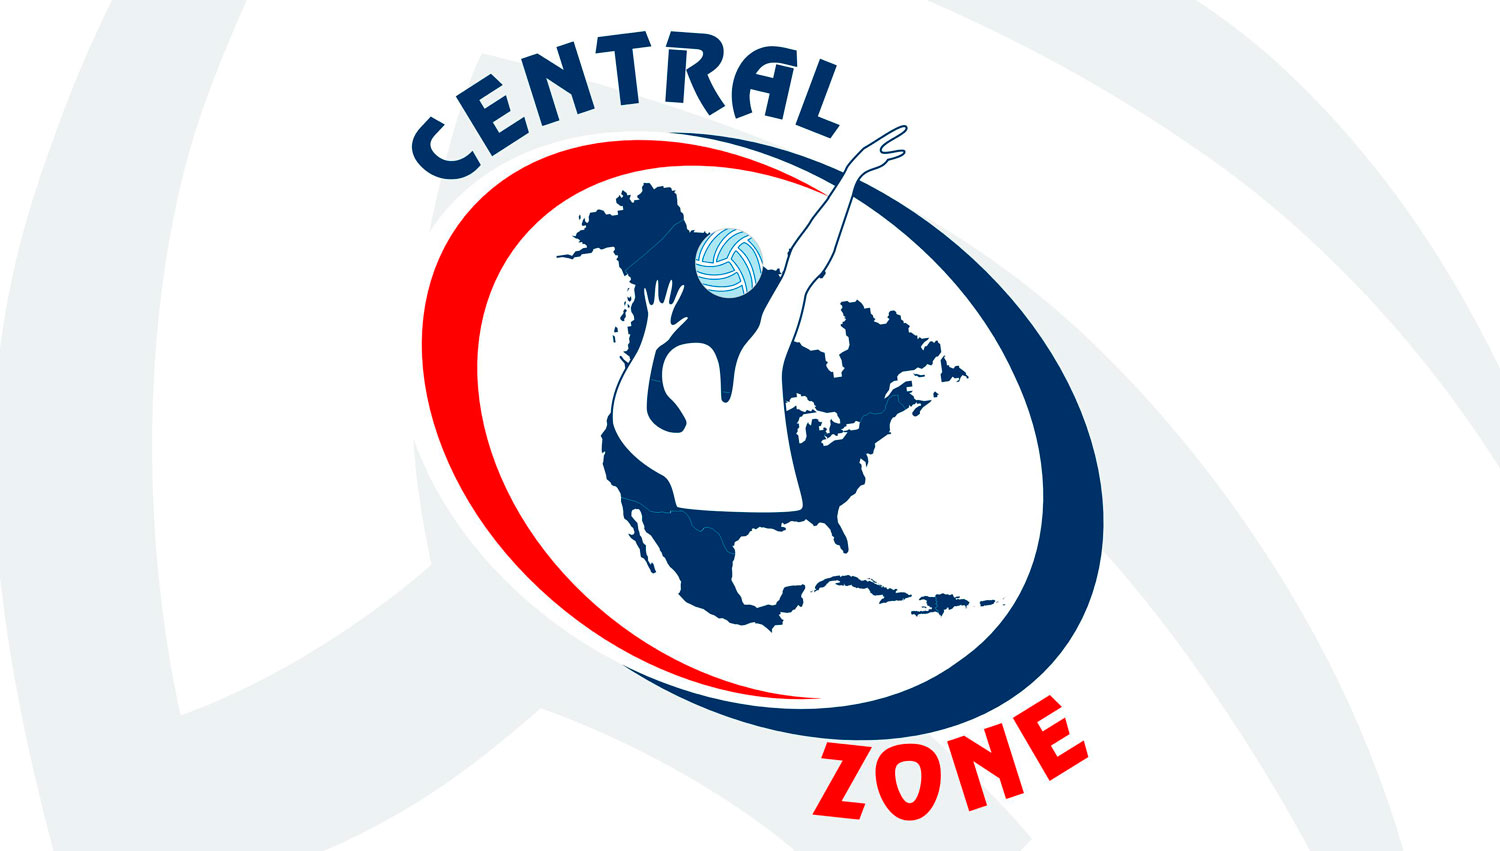 central Zone